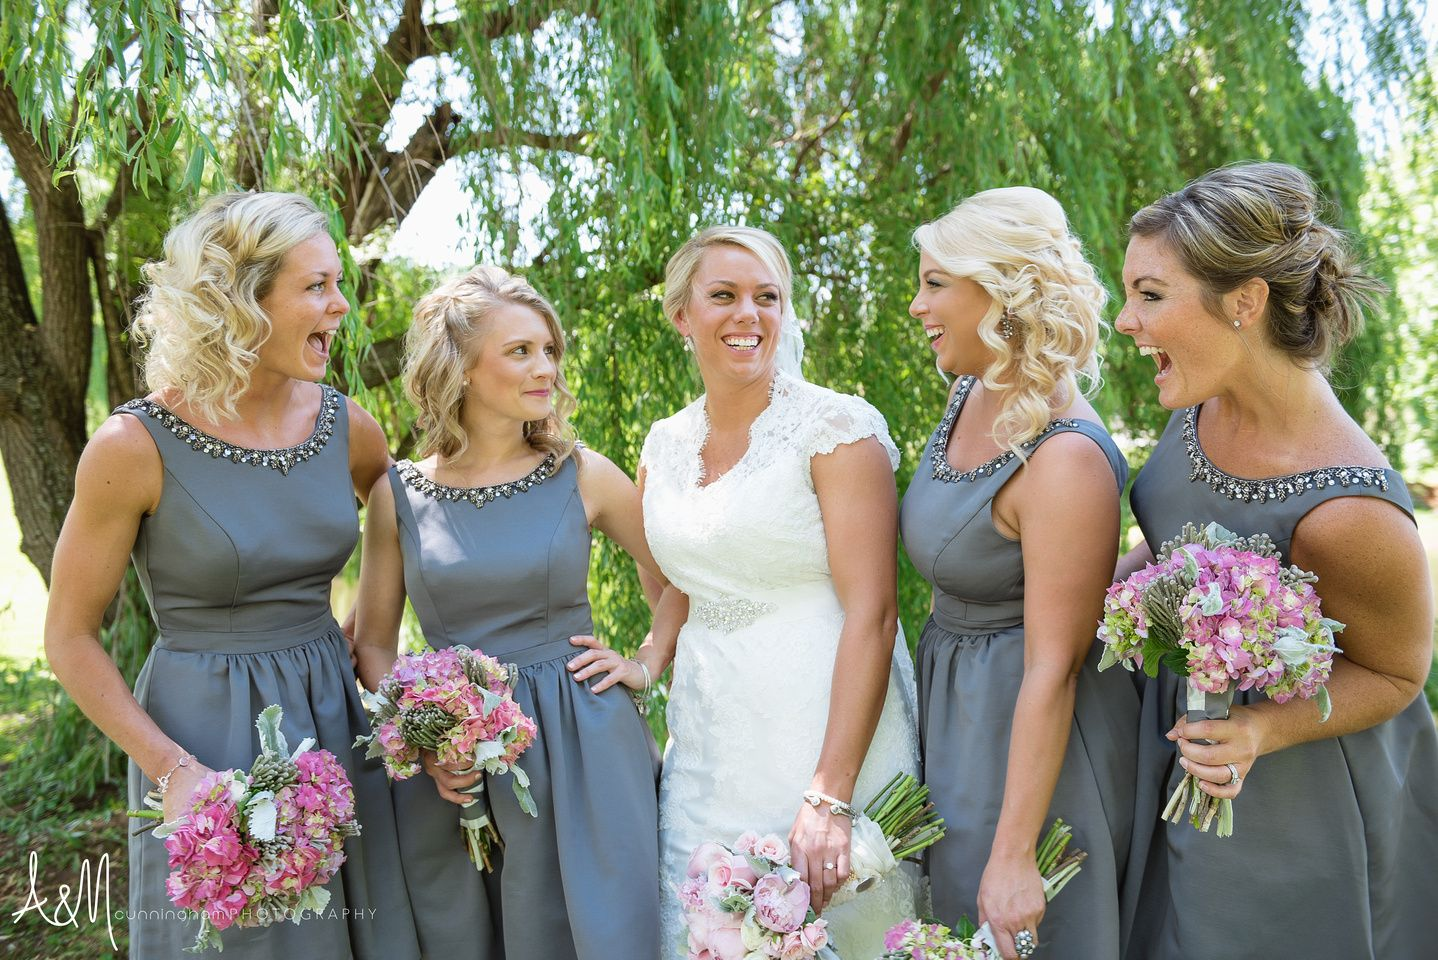 Am cunningham photography blush and neutral wedding grey am cunningham photography blush and neutral wedding grey bridesmaids dresses pink bouquet bridesmaids posing ombrellifo Gallery